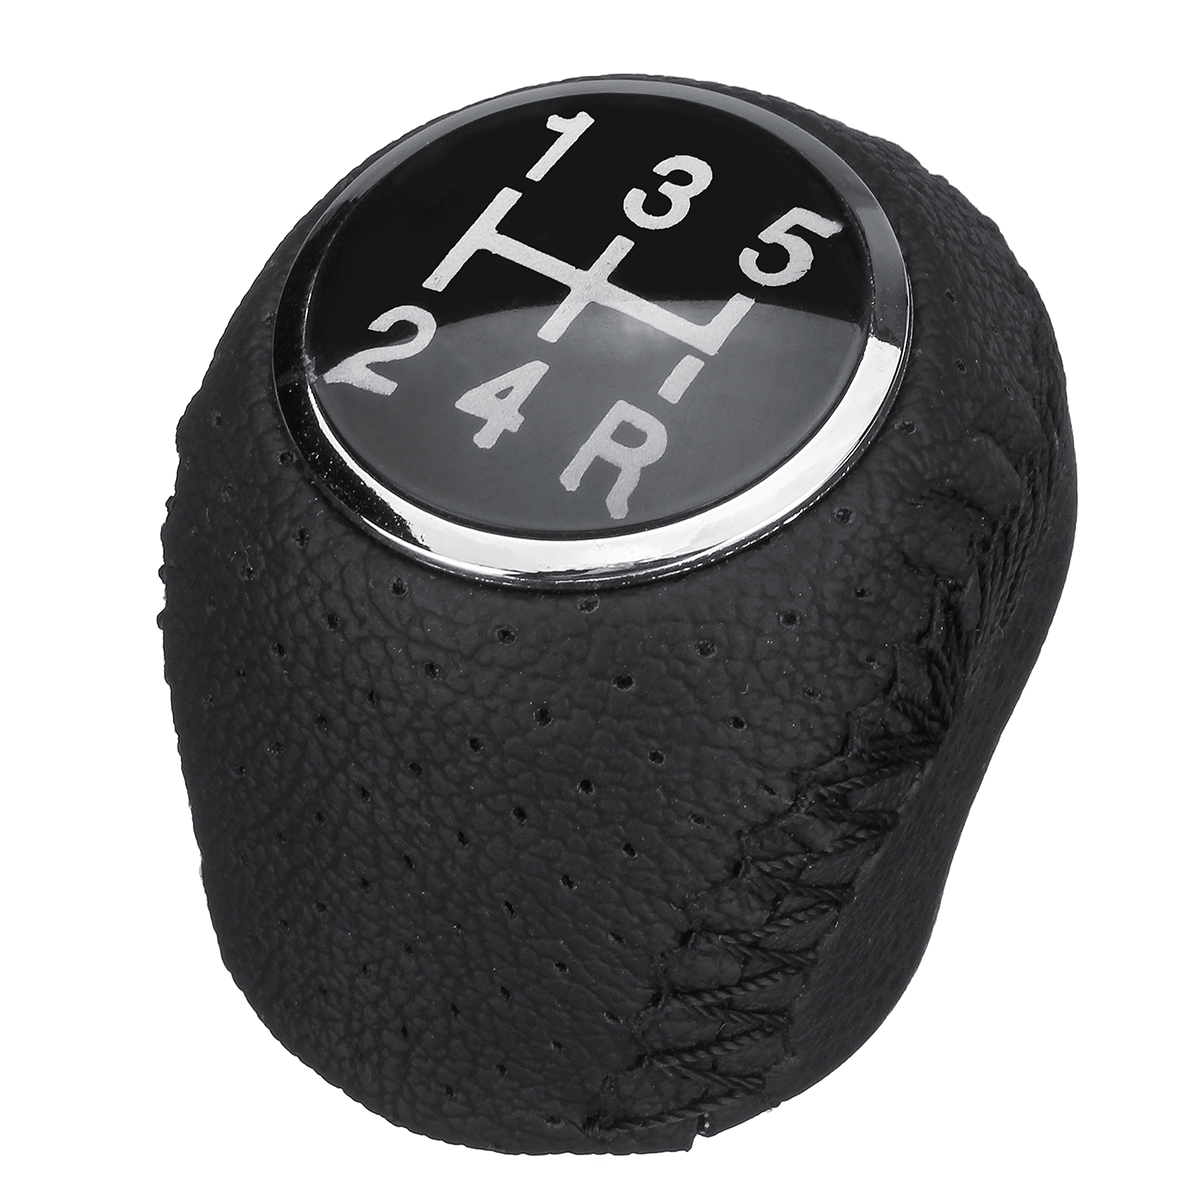 5 6 Speed Gear Shift Knob Handle Ball for Citroen Jumper Relay for Peugeot Boxer 2002-2014